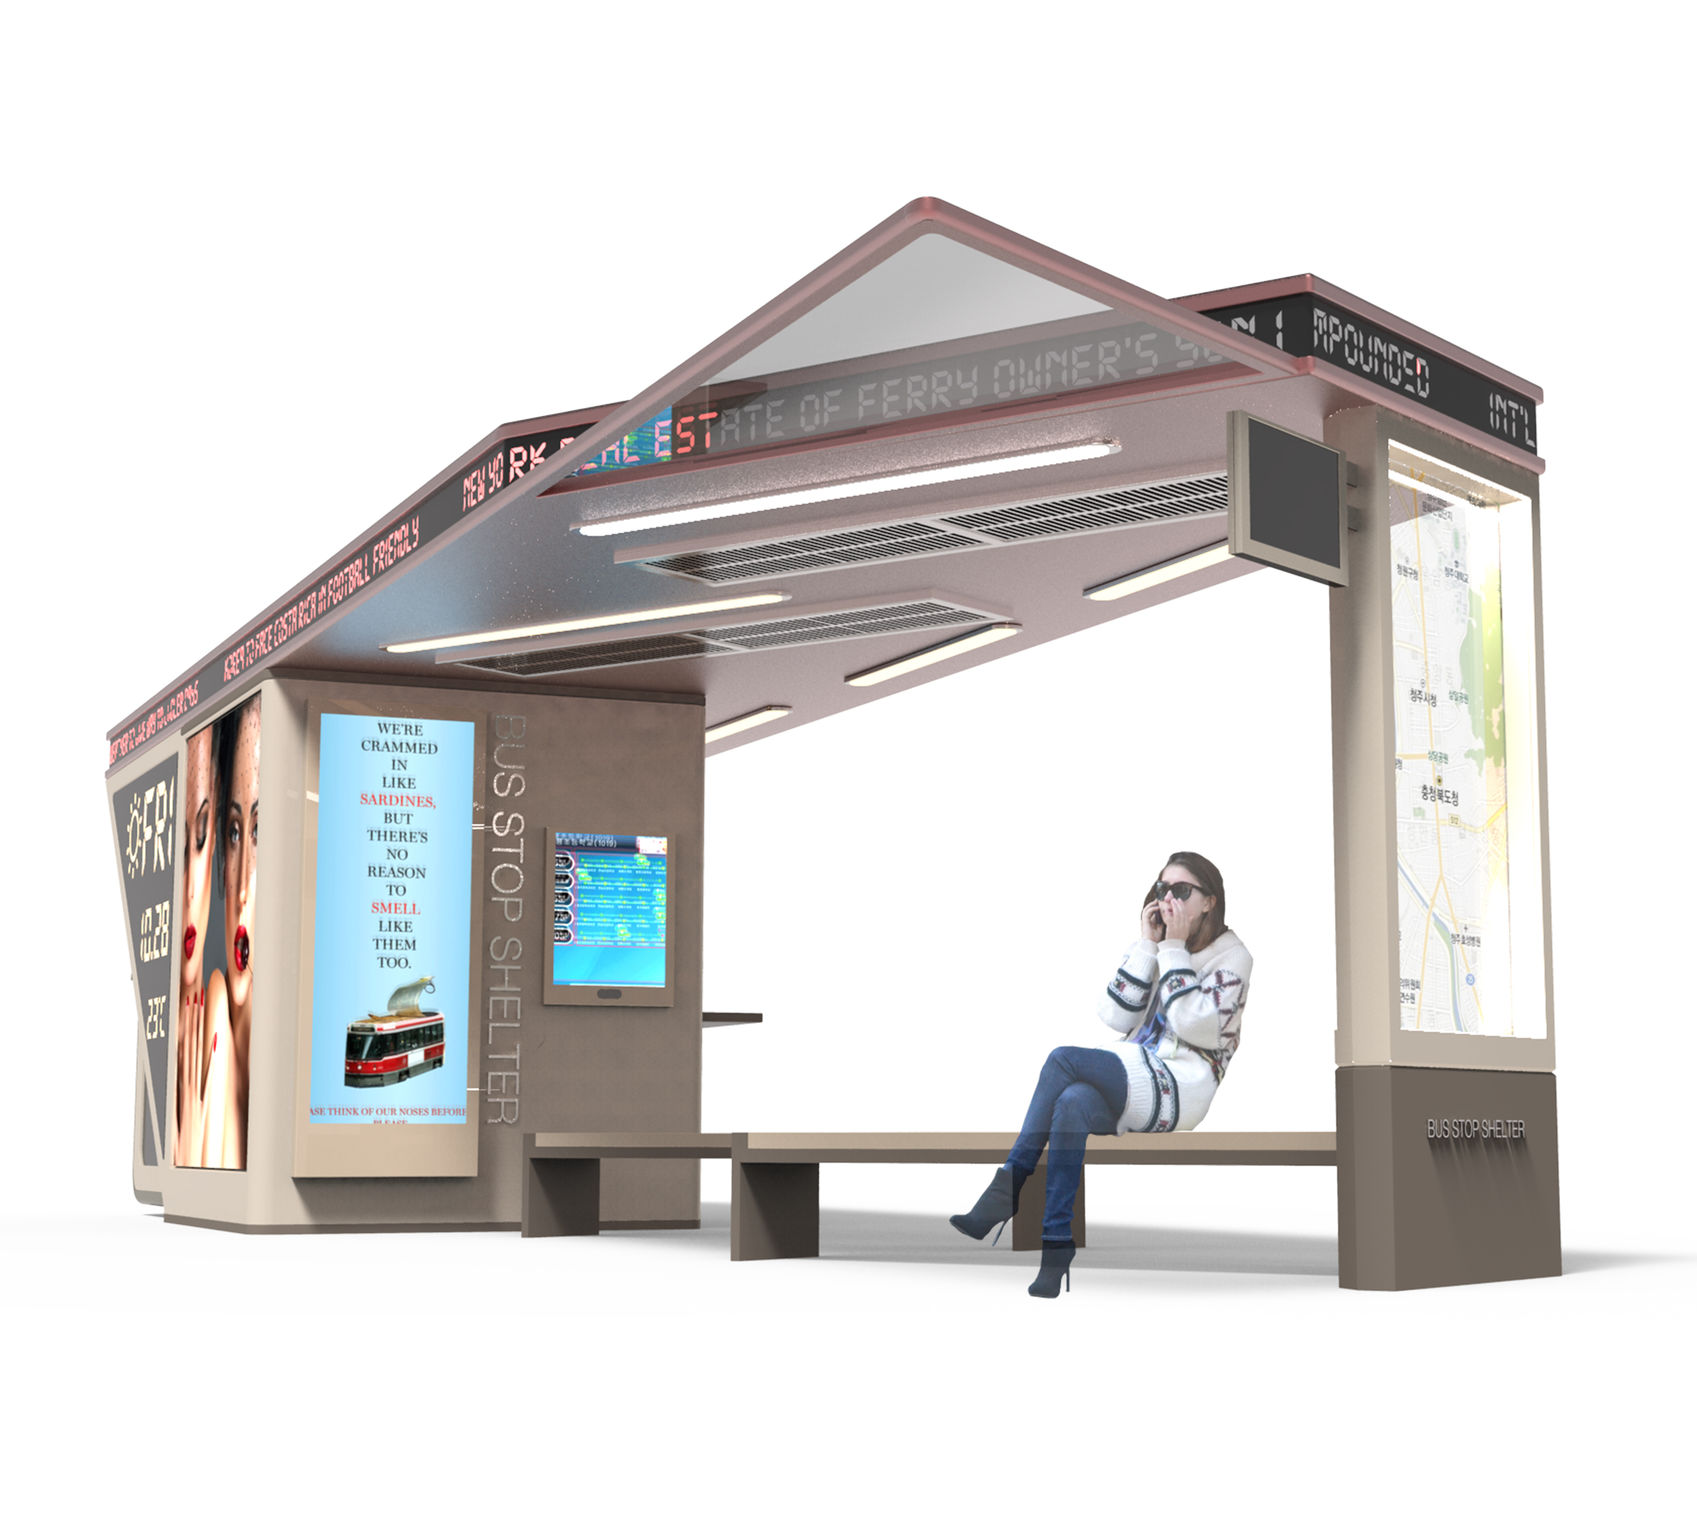 Shed Roof Bus Stop Shelter Entry If World Design Guide